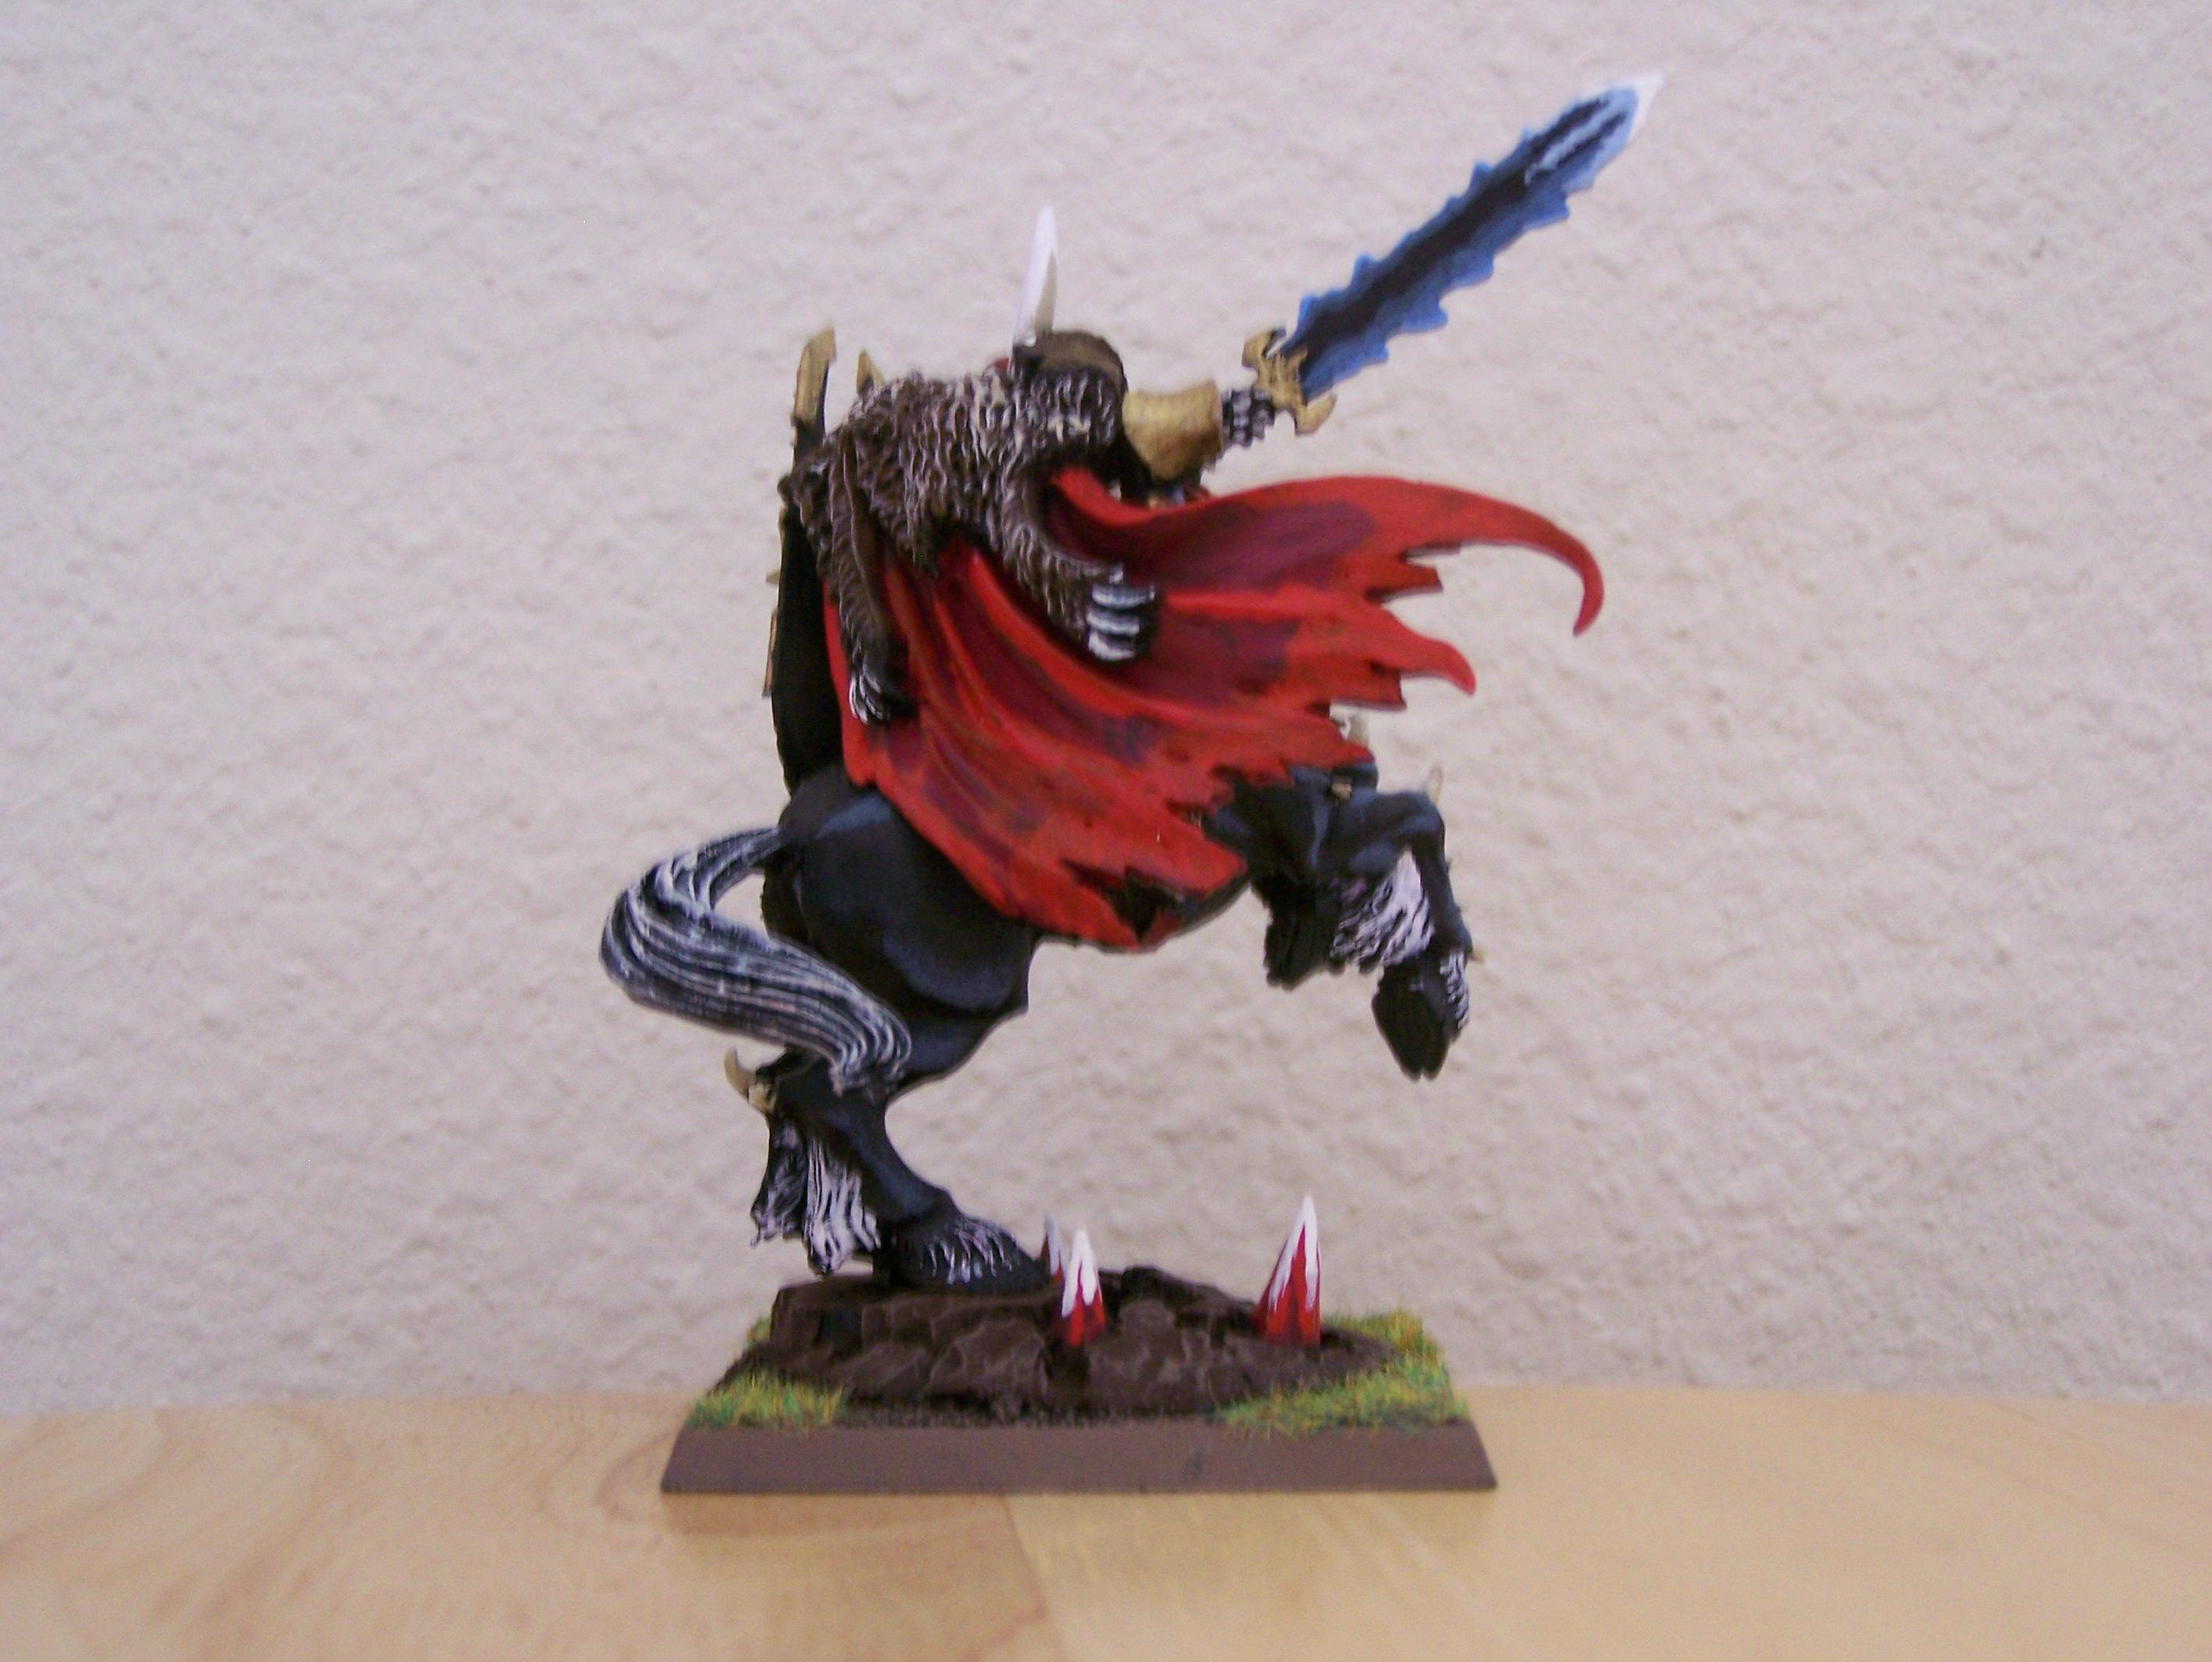 Cape, Horse, Sword, Here is my Skaven Giant